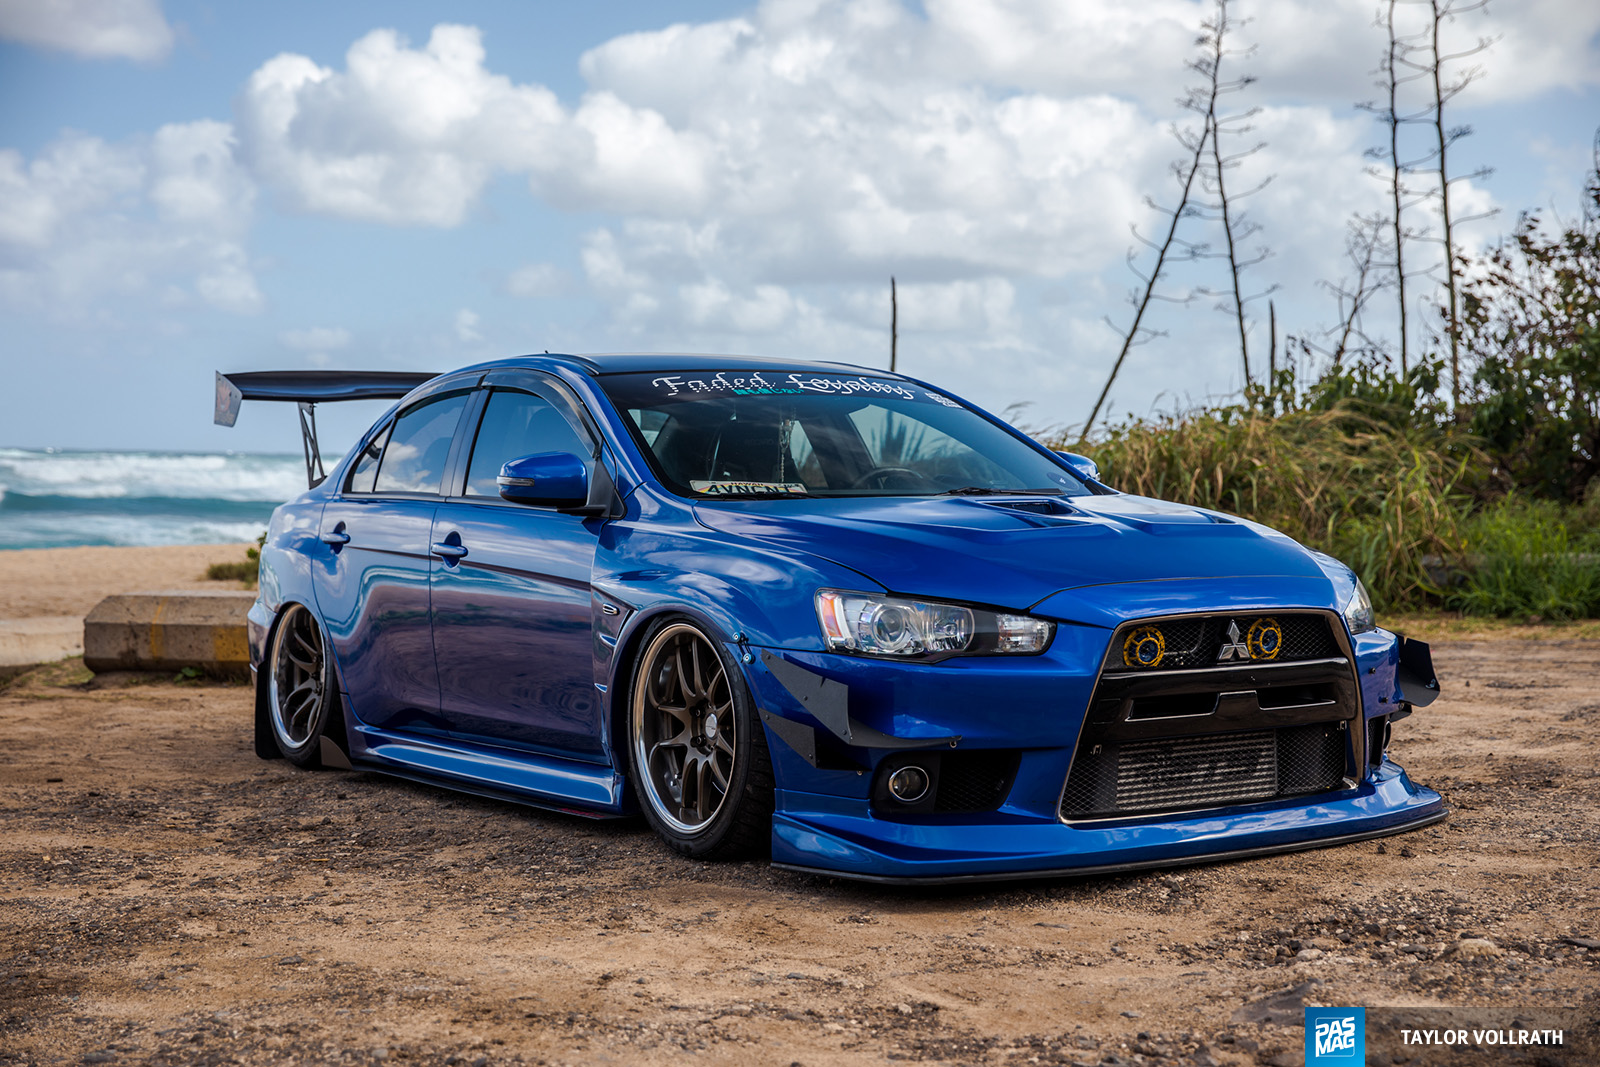 36 JM Andrada 2015 Mitsubishi Evolution X PASMAG Tuner Battlegrounds